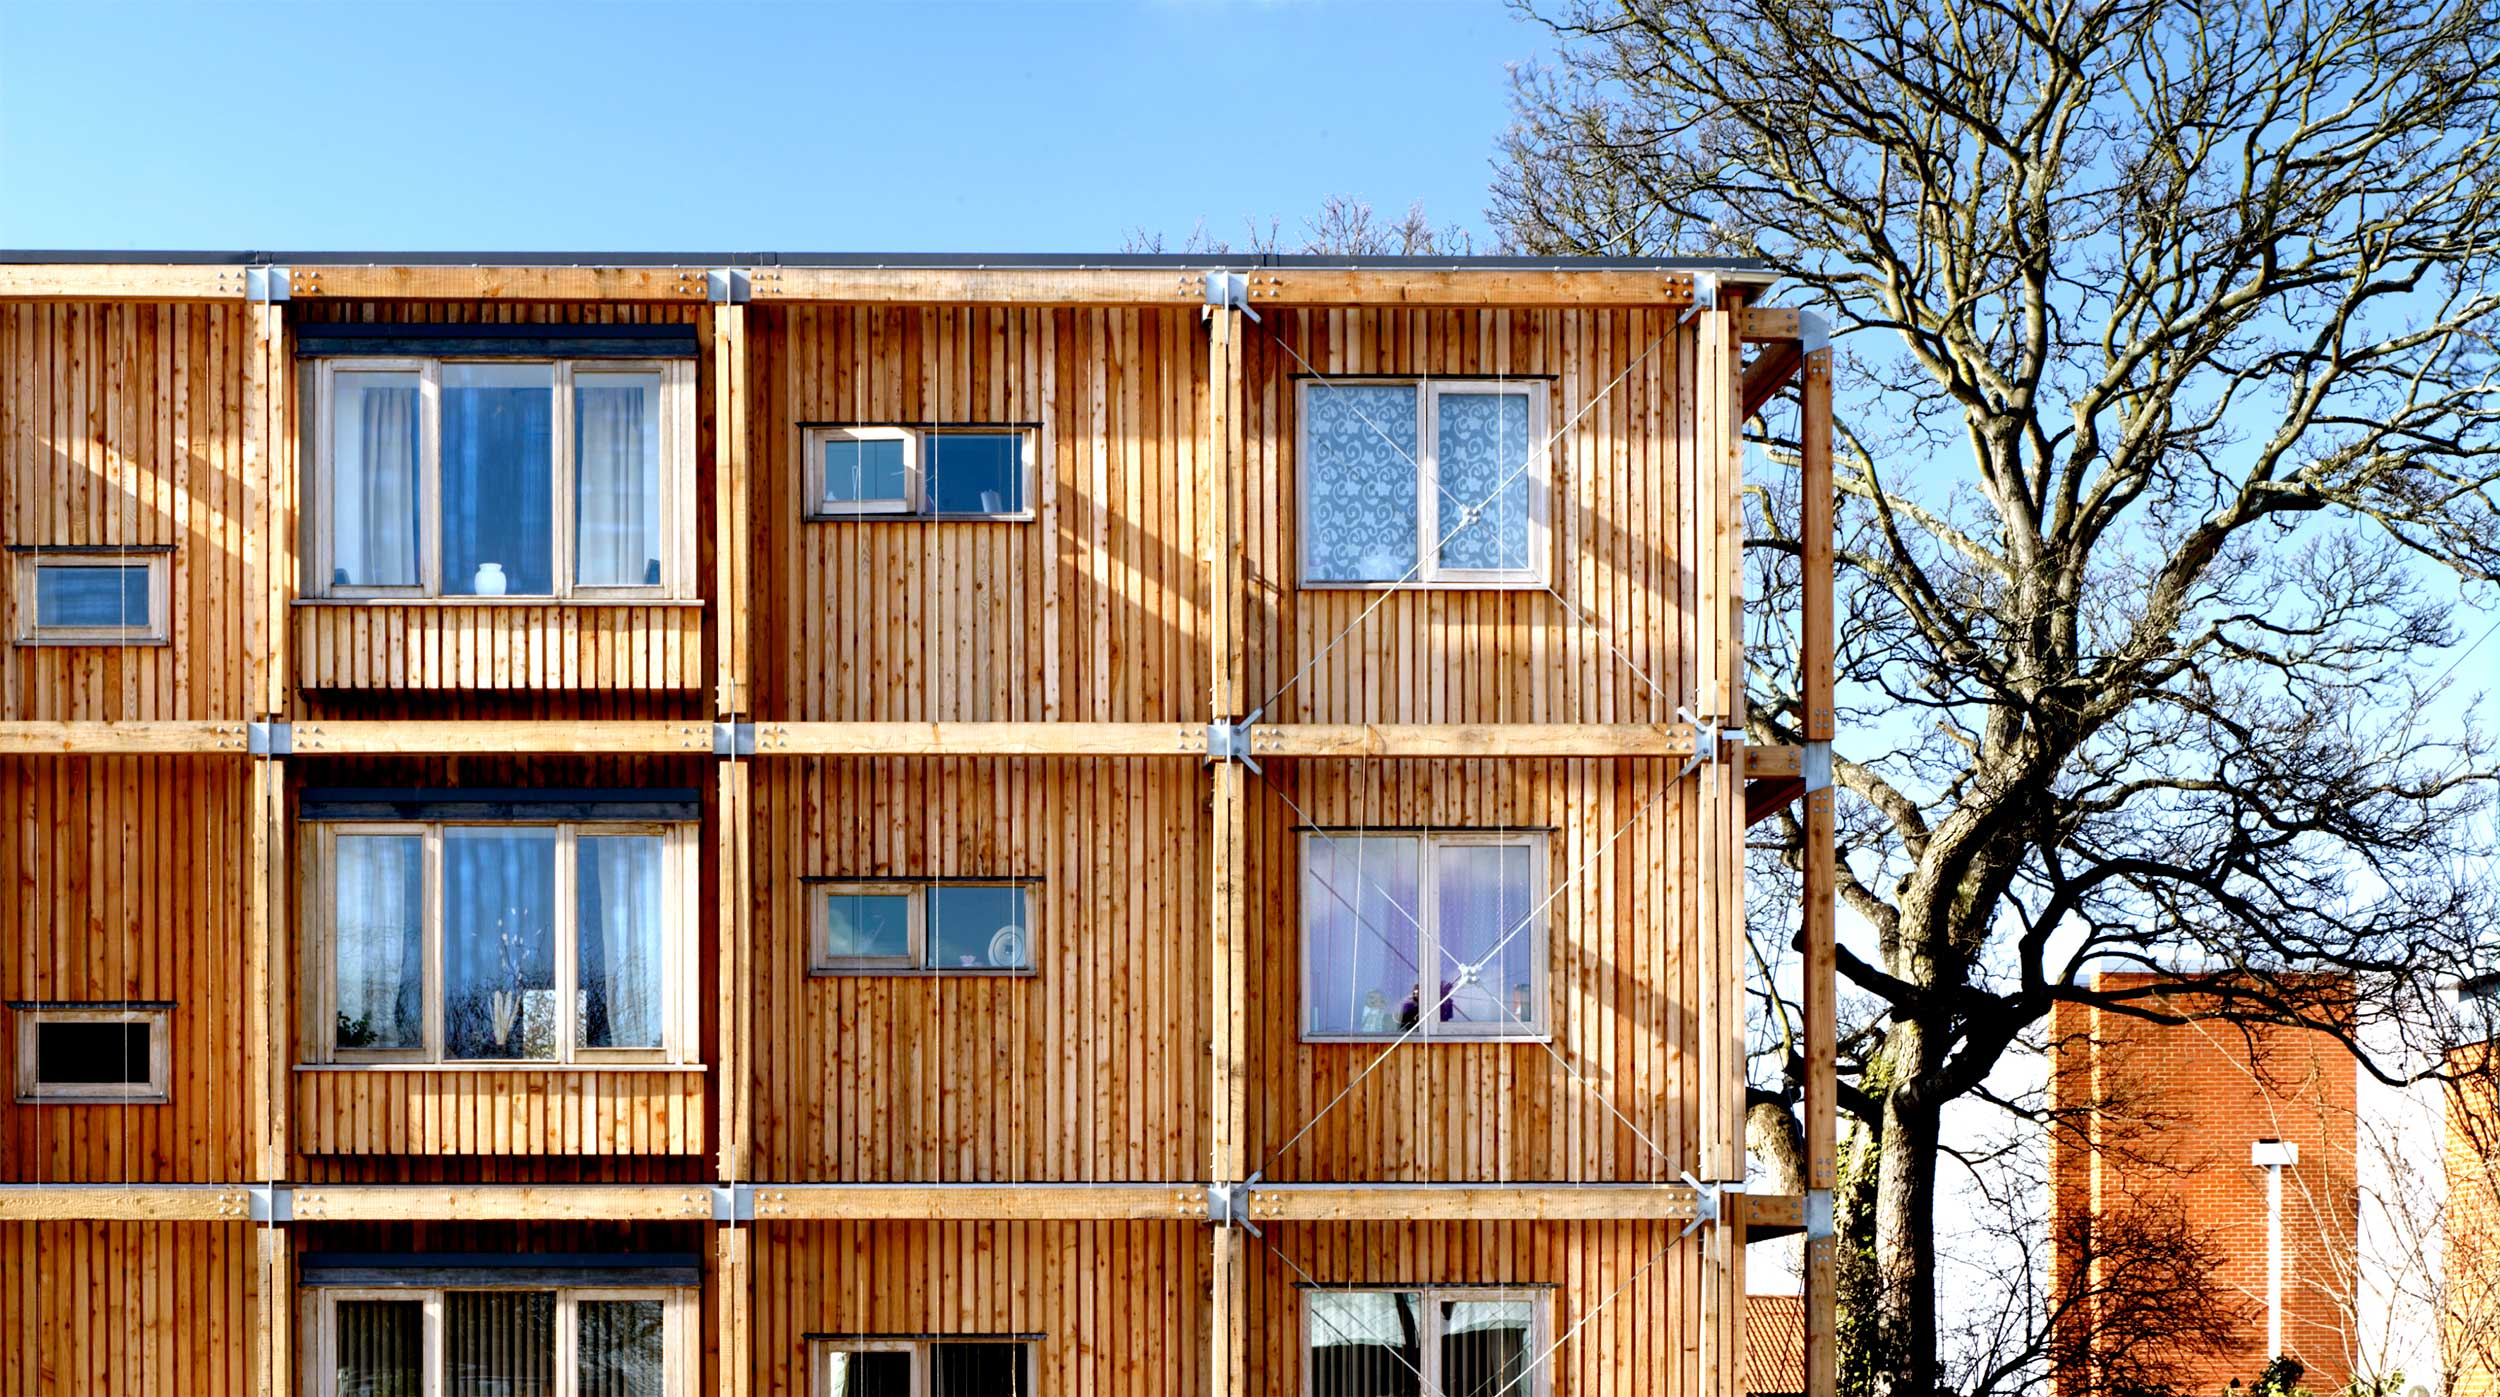 Kings Road Flats affordable social housing riba east award dwelling modece architects suffolk sustainable eco